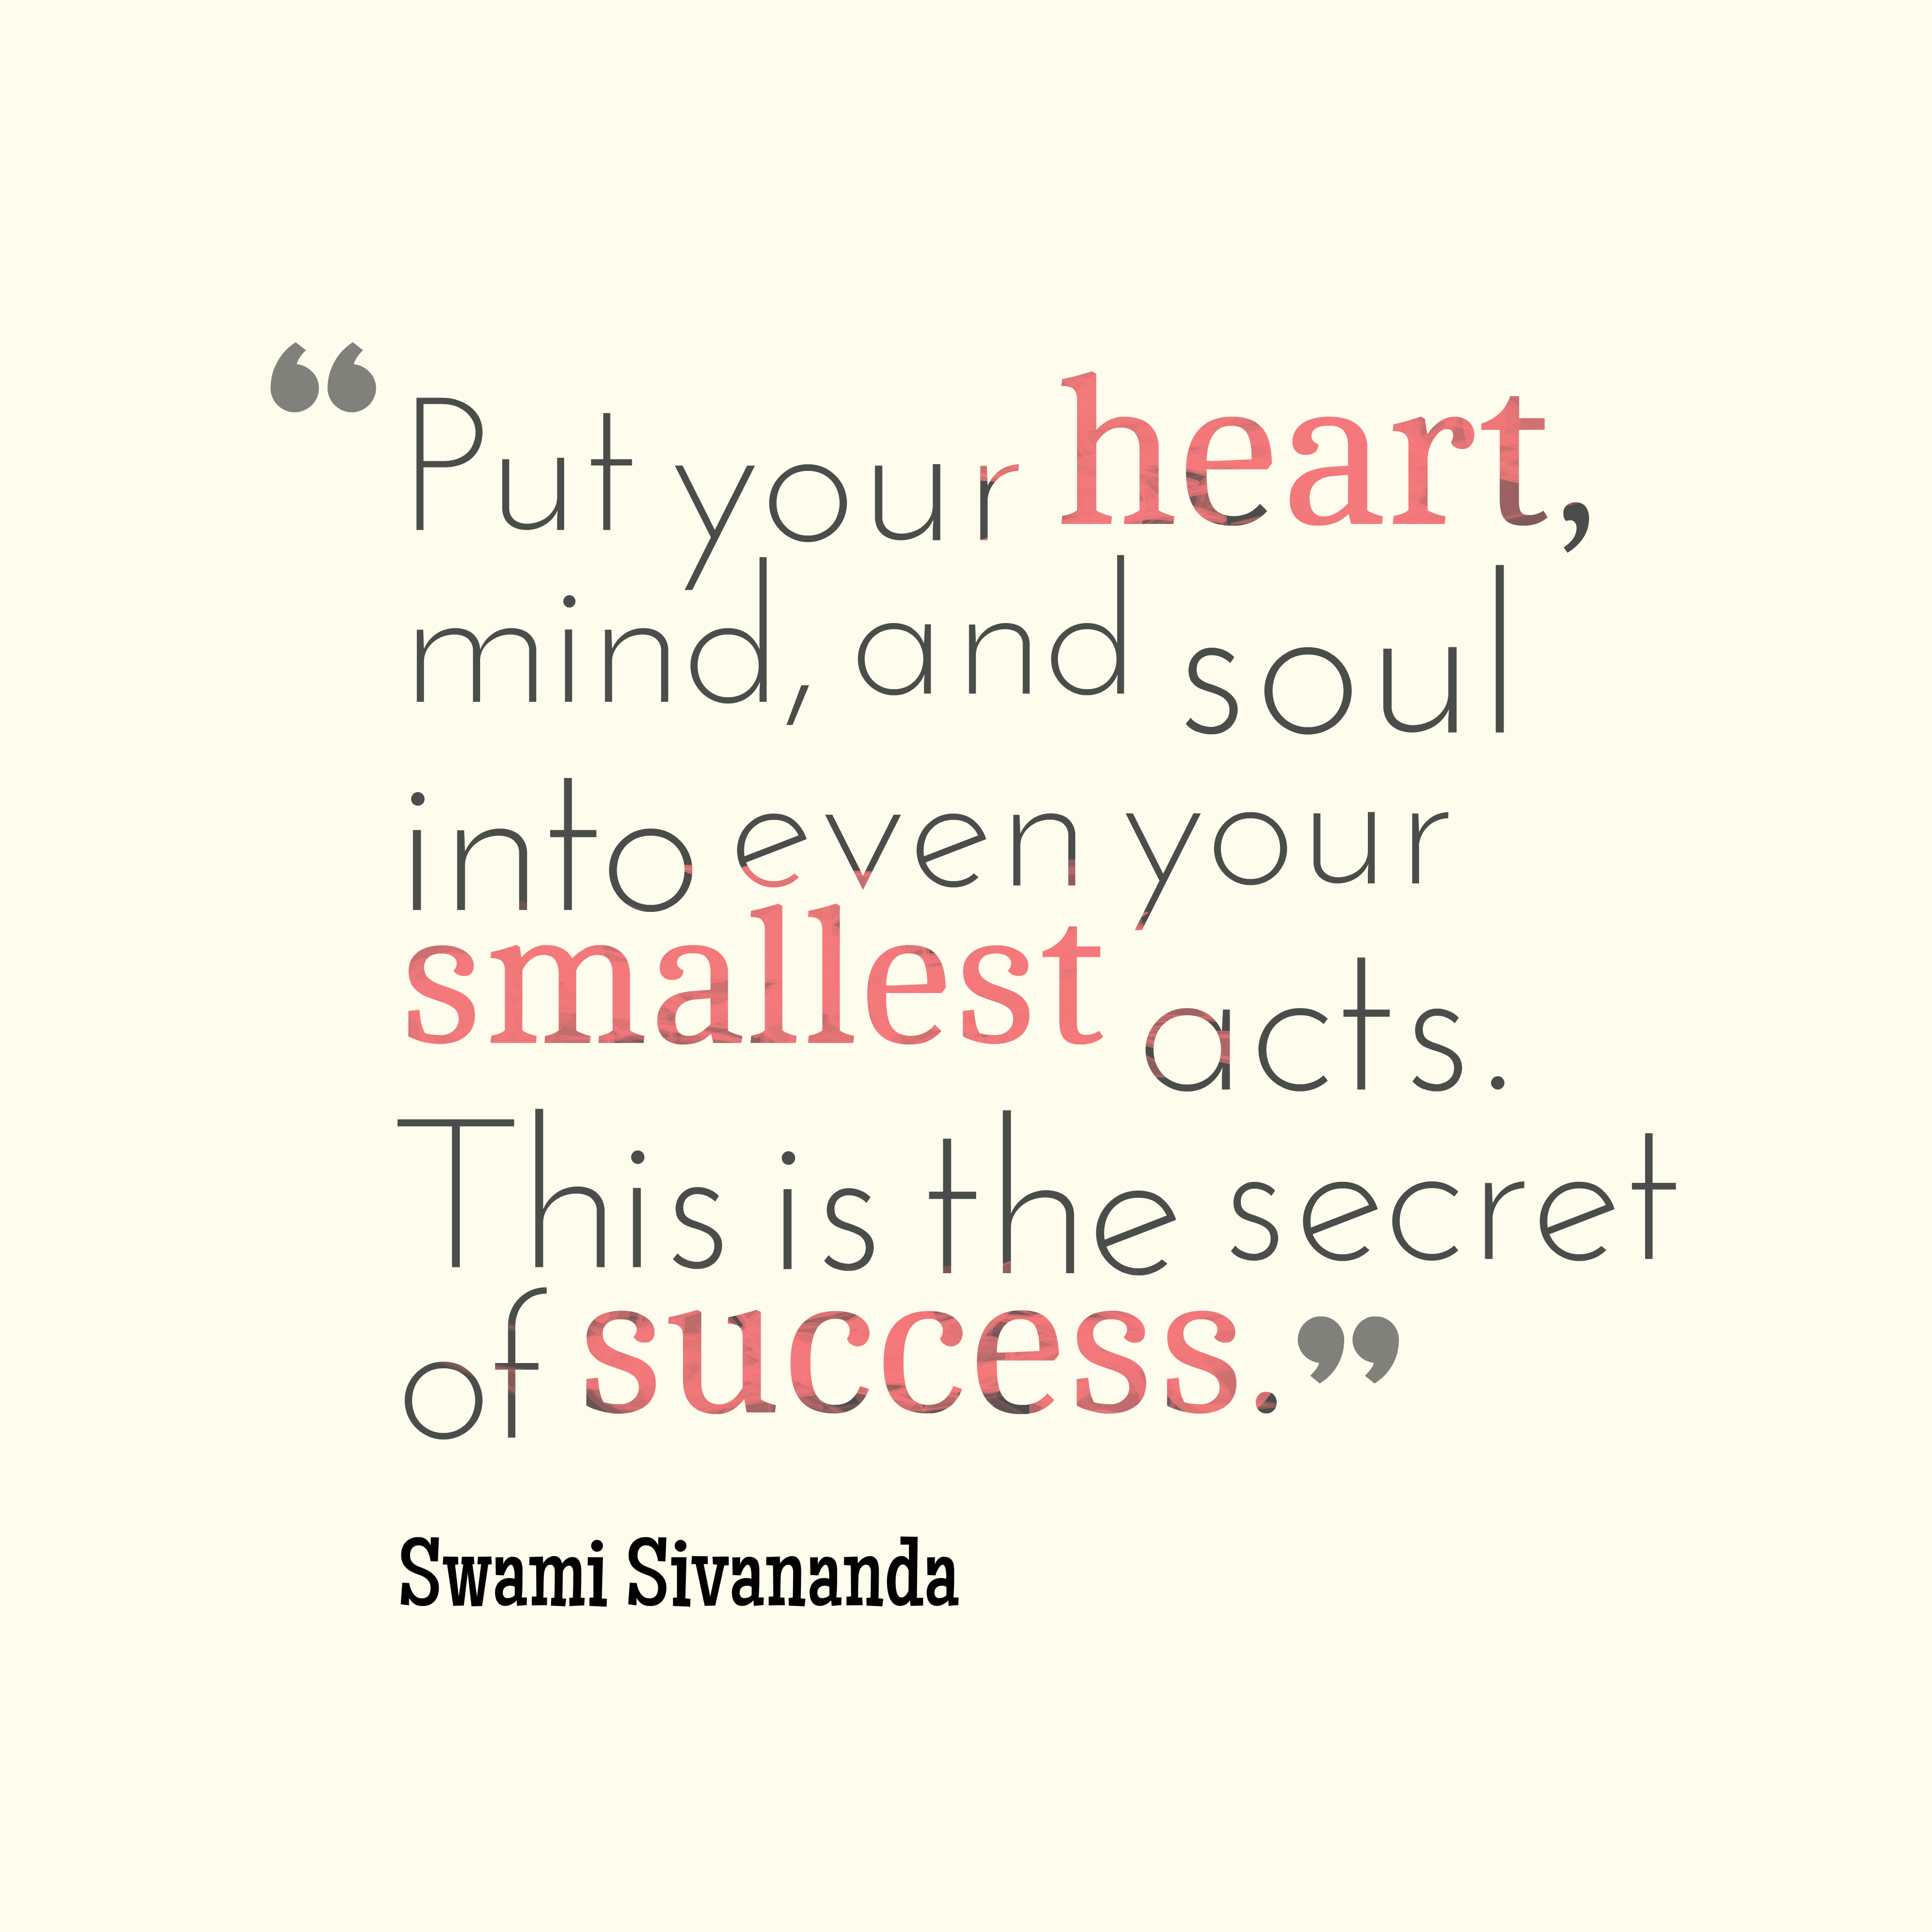 Quotes image of Put your heart, mind, and soul into even your smallest acts. This is the secret of success.